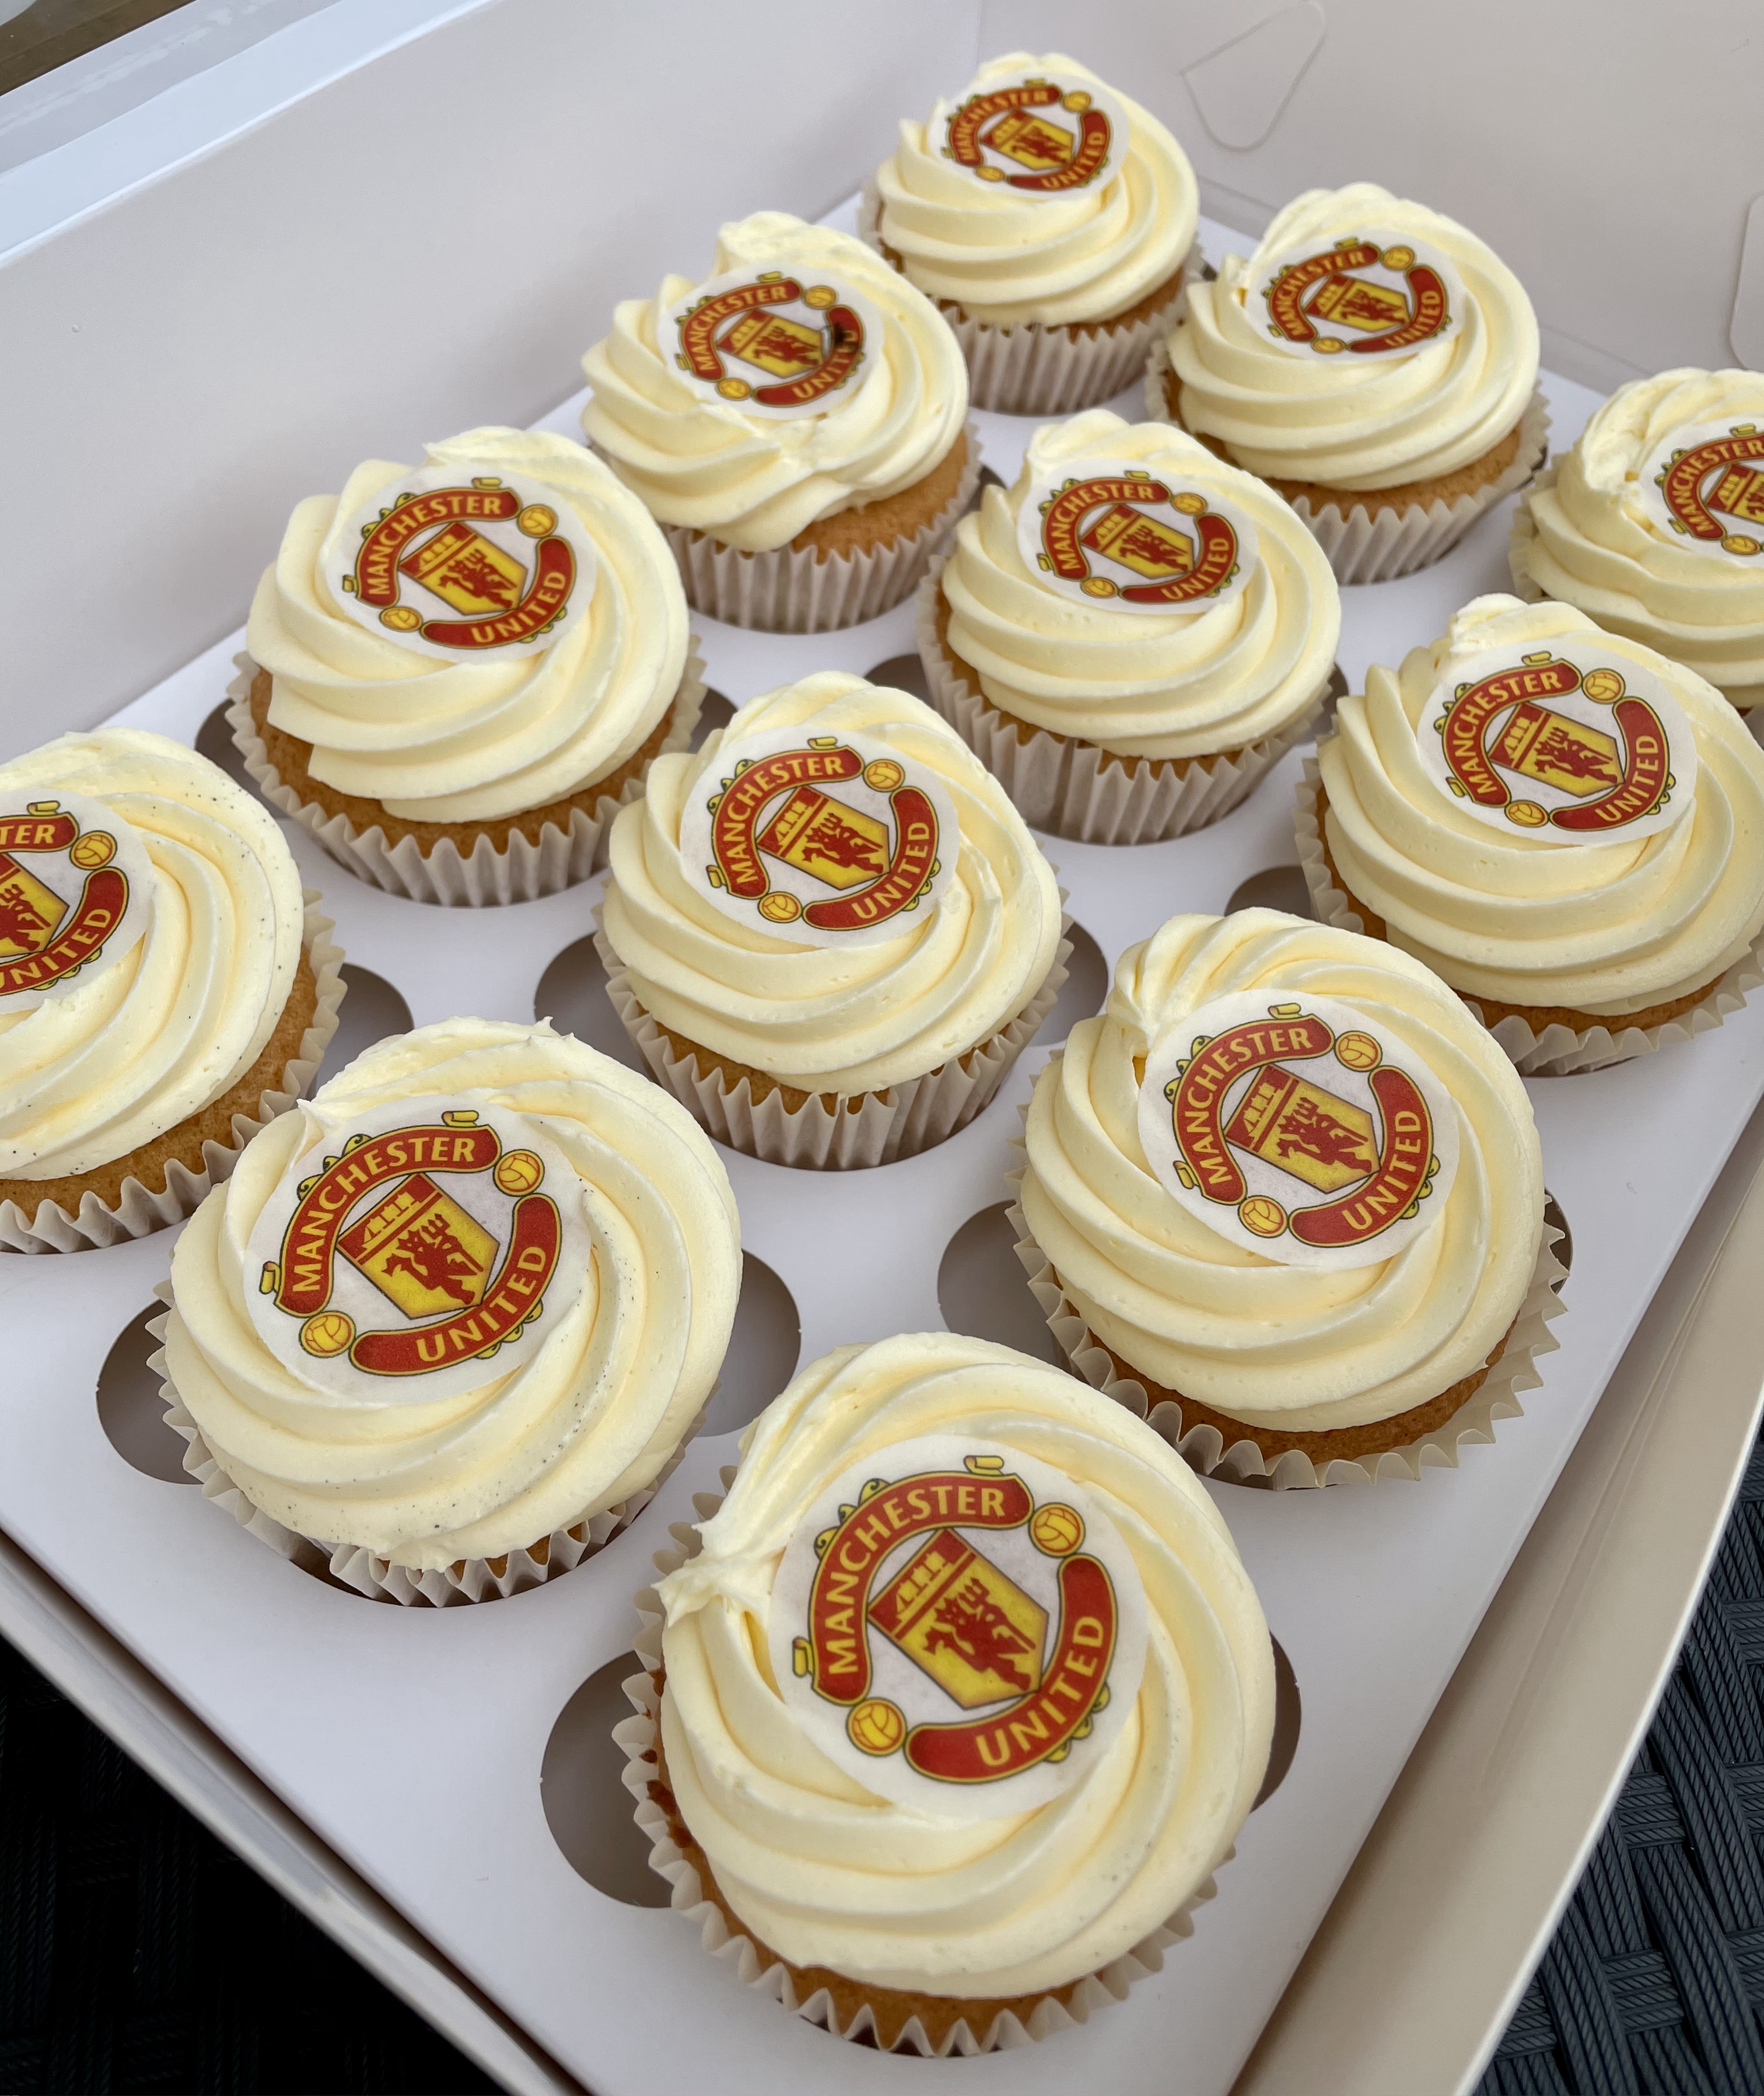 6. Manchester United Themed Cupcakes